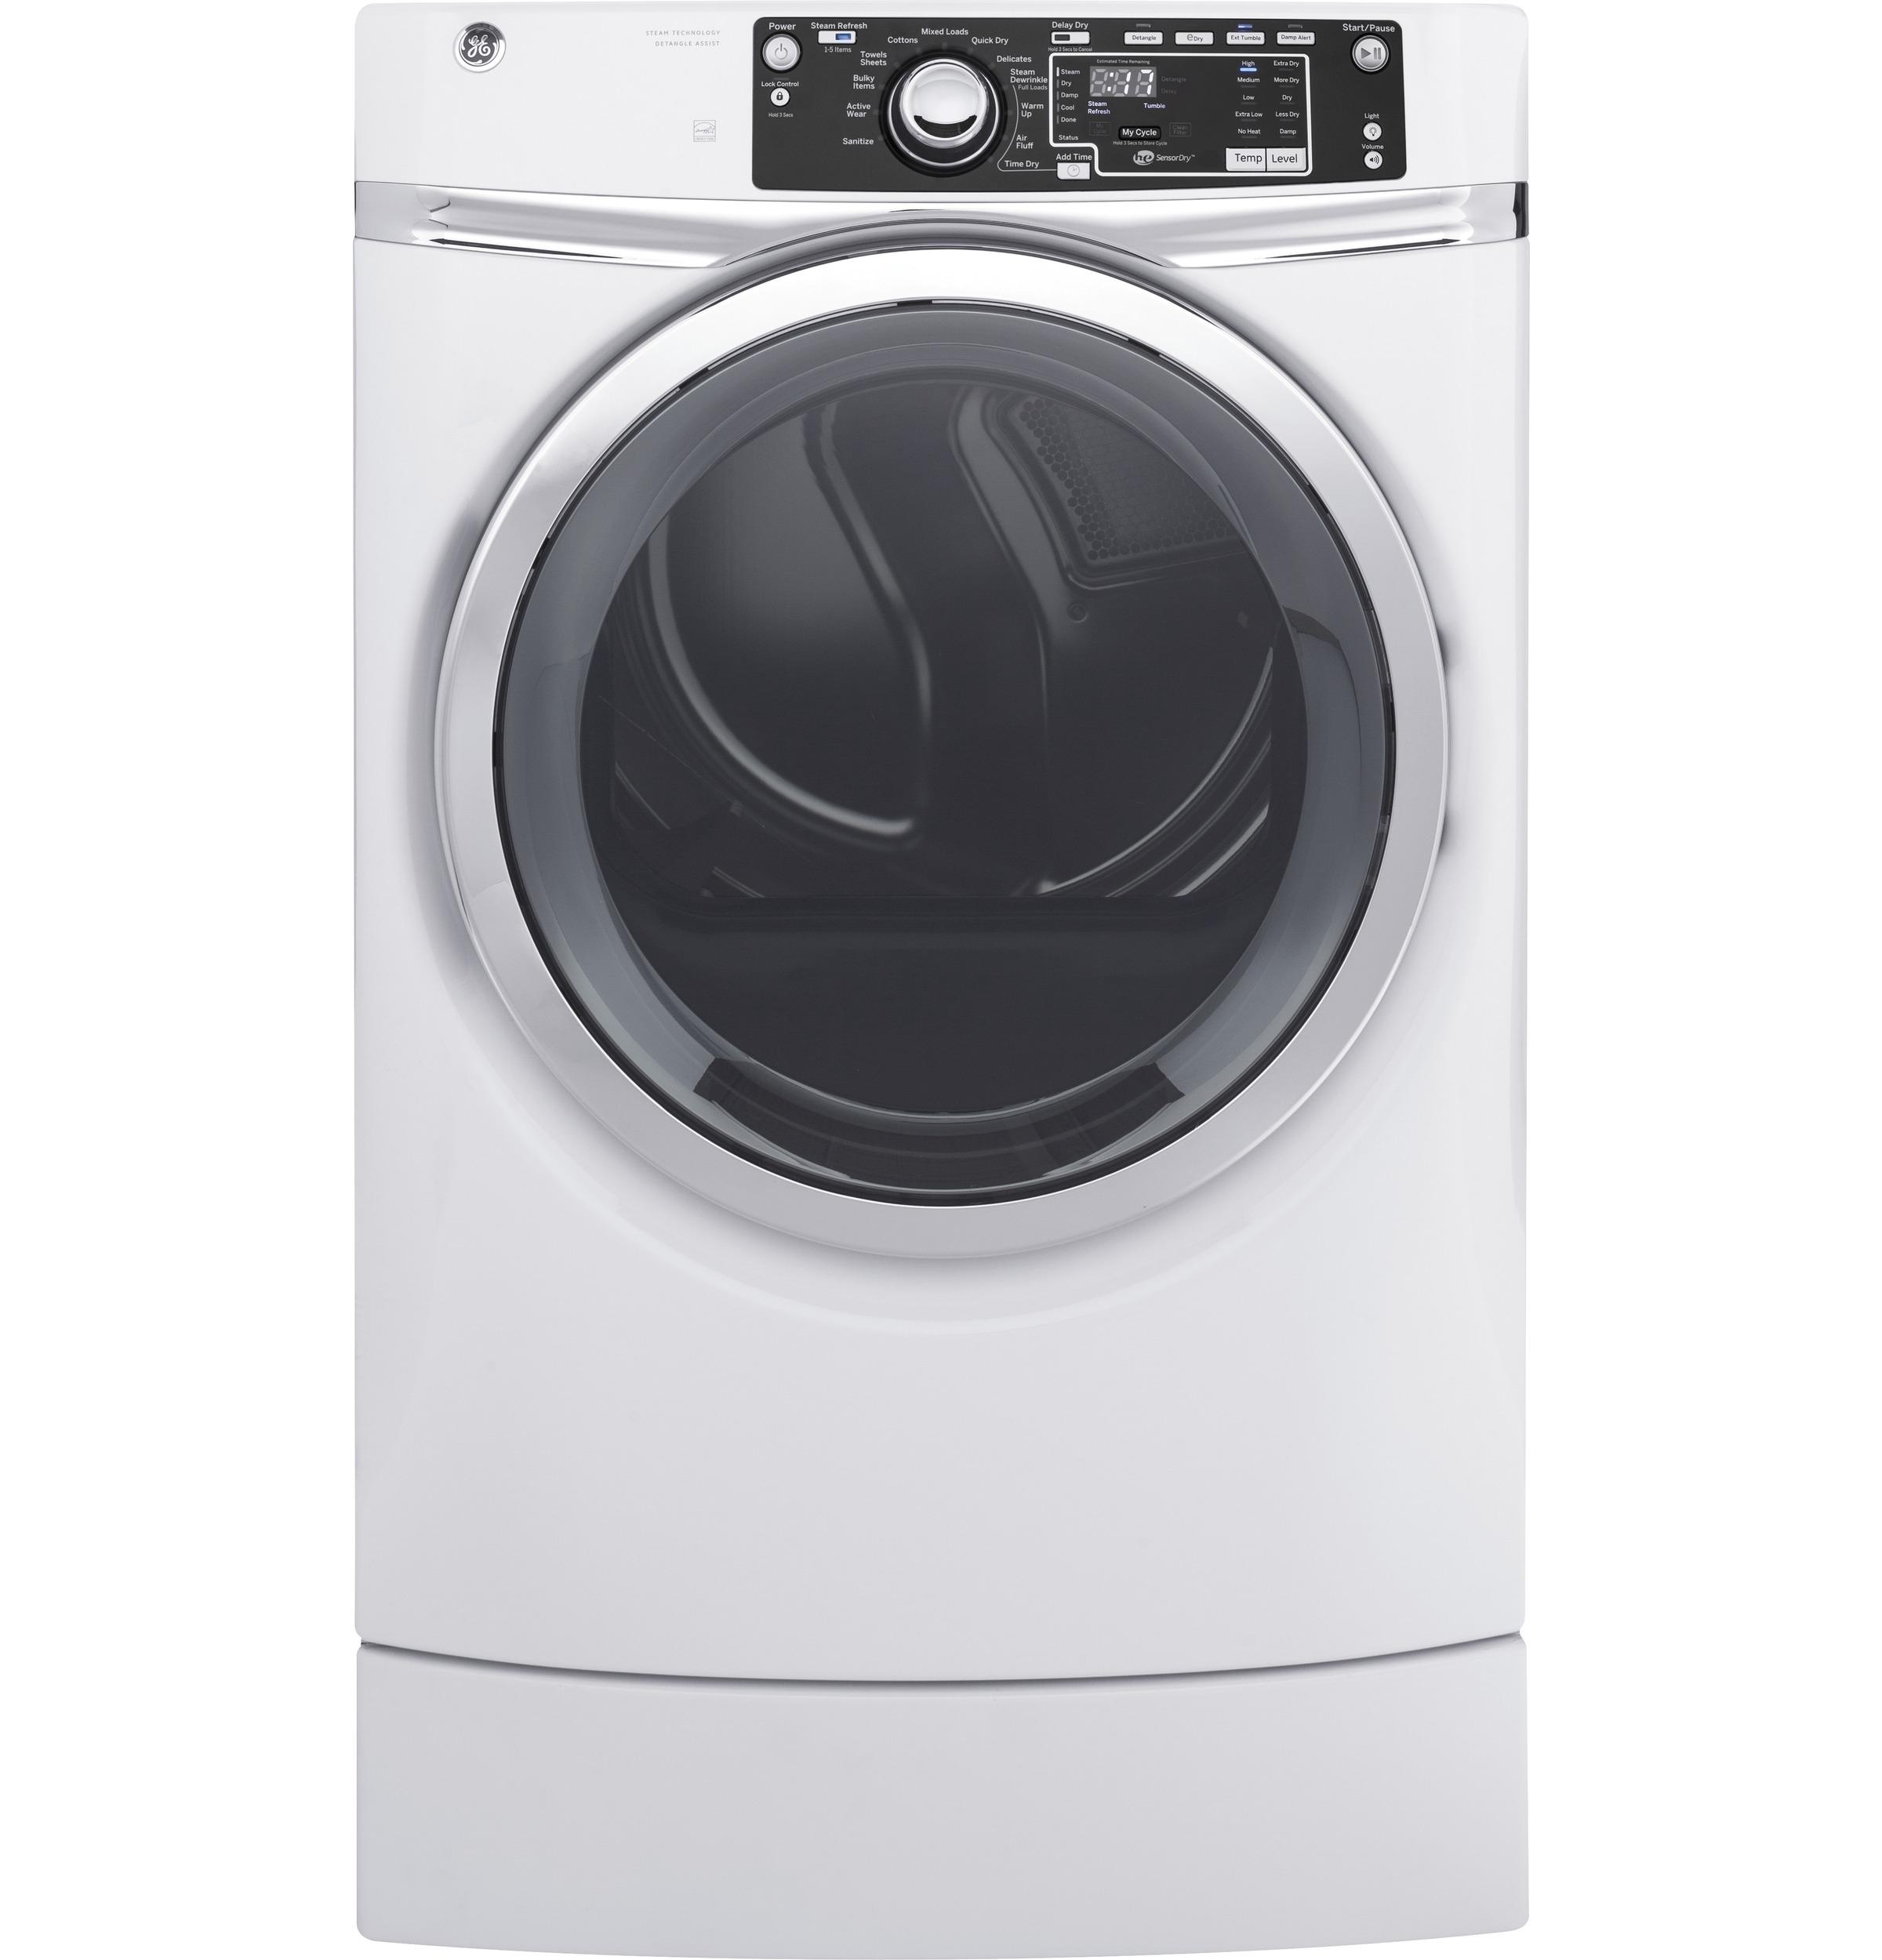 GE(R) 8.3 cu. ft. Capacity RightHeight(TM) Front Load Electric ENERGY STAR(R) Dryer with Steam